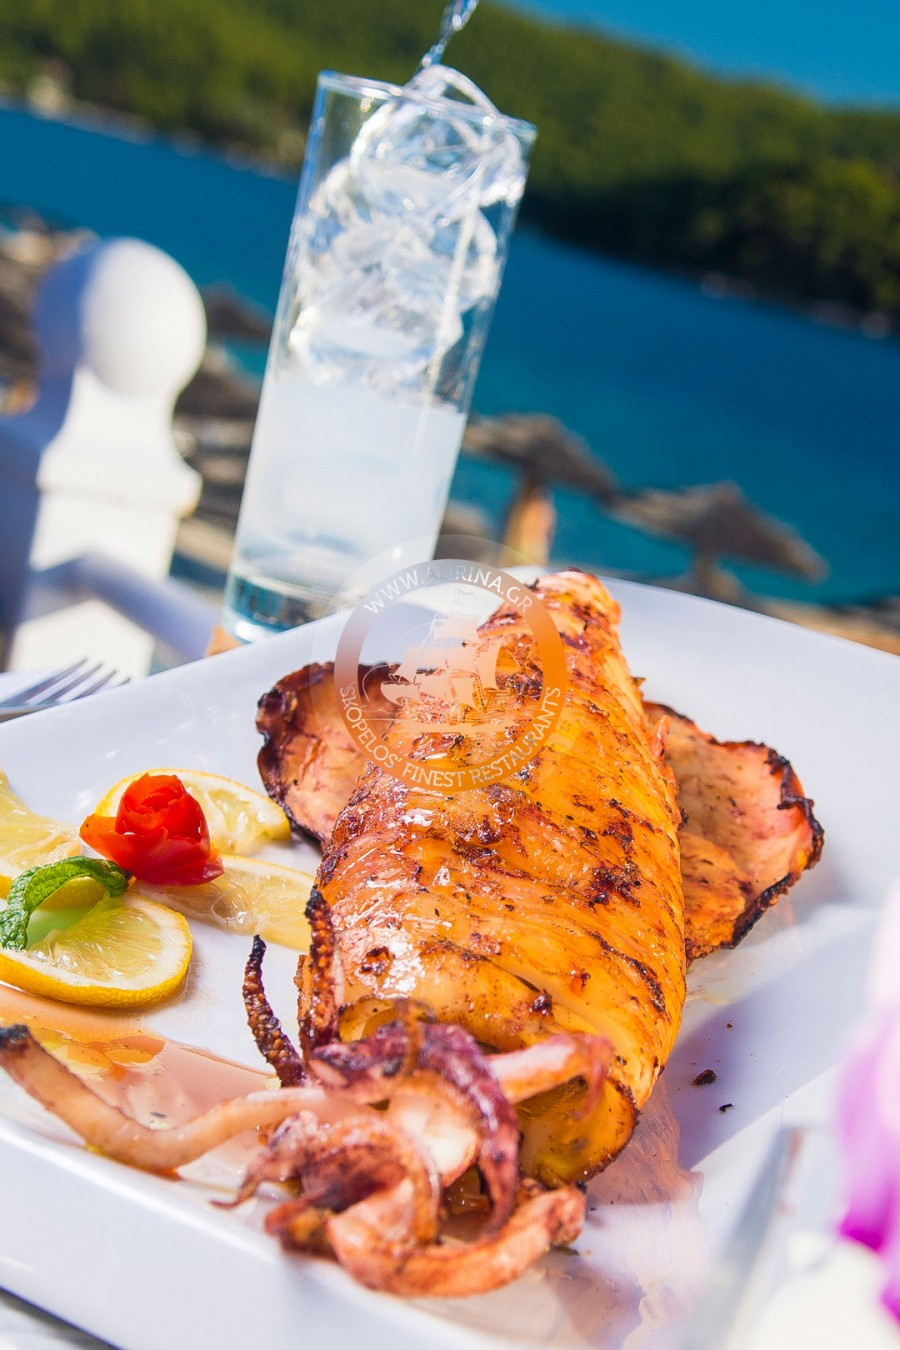 Grilled calamari with ouzo